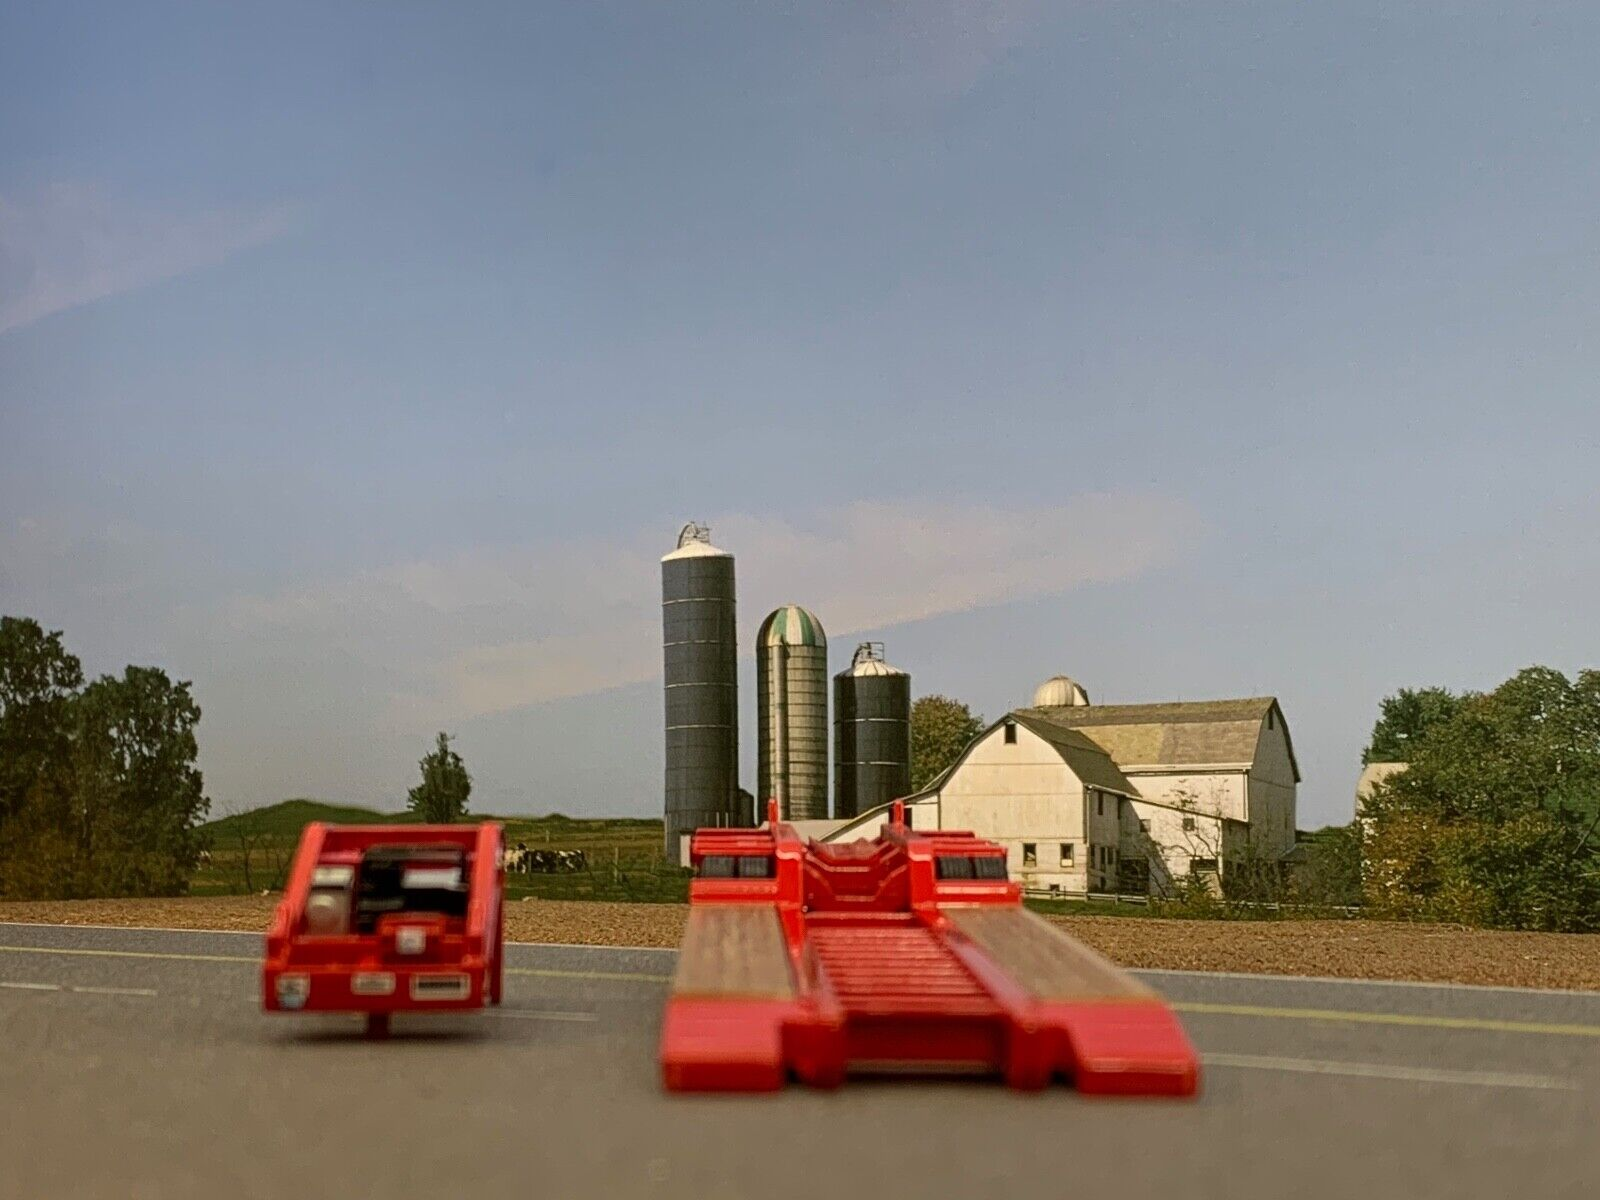 1/64 DCP RED FONTAINE MAGNITUDE LOWBOY TRI-AXLE TRAILER 2